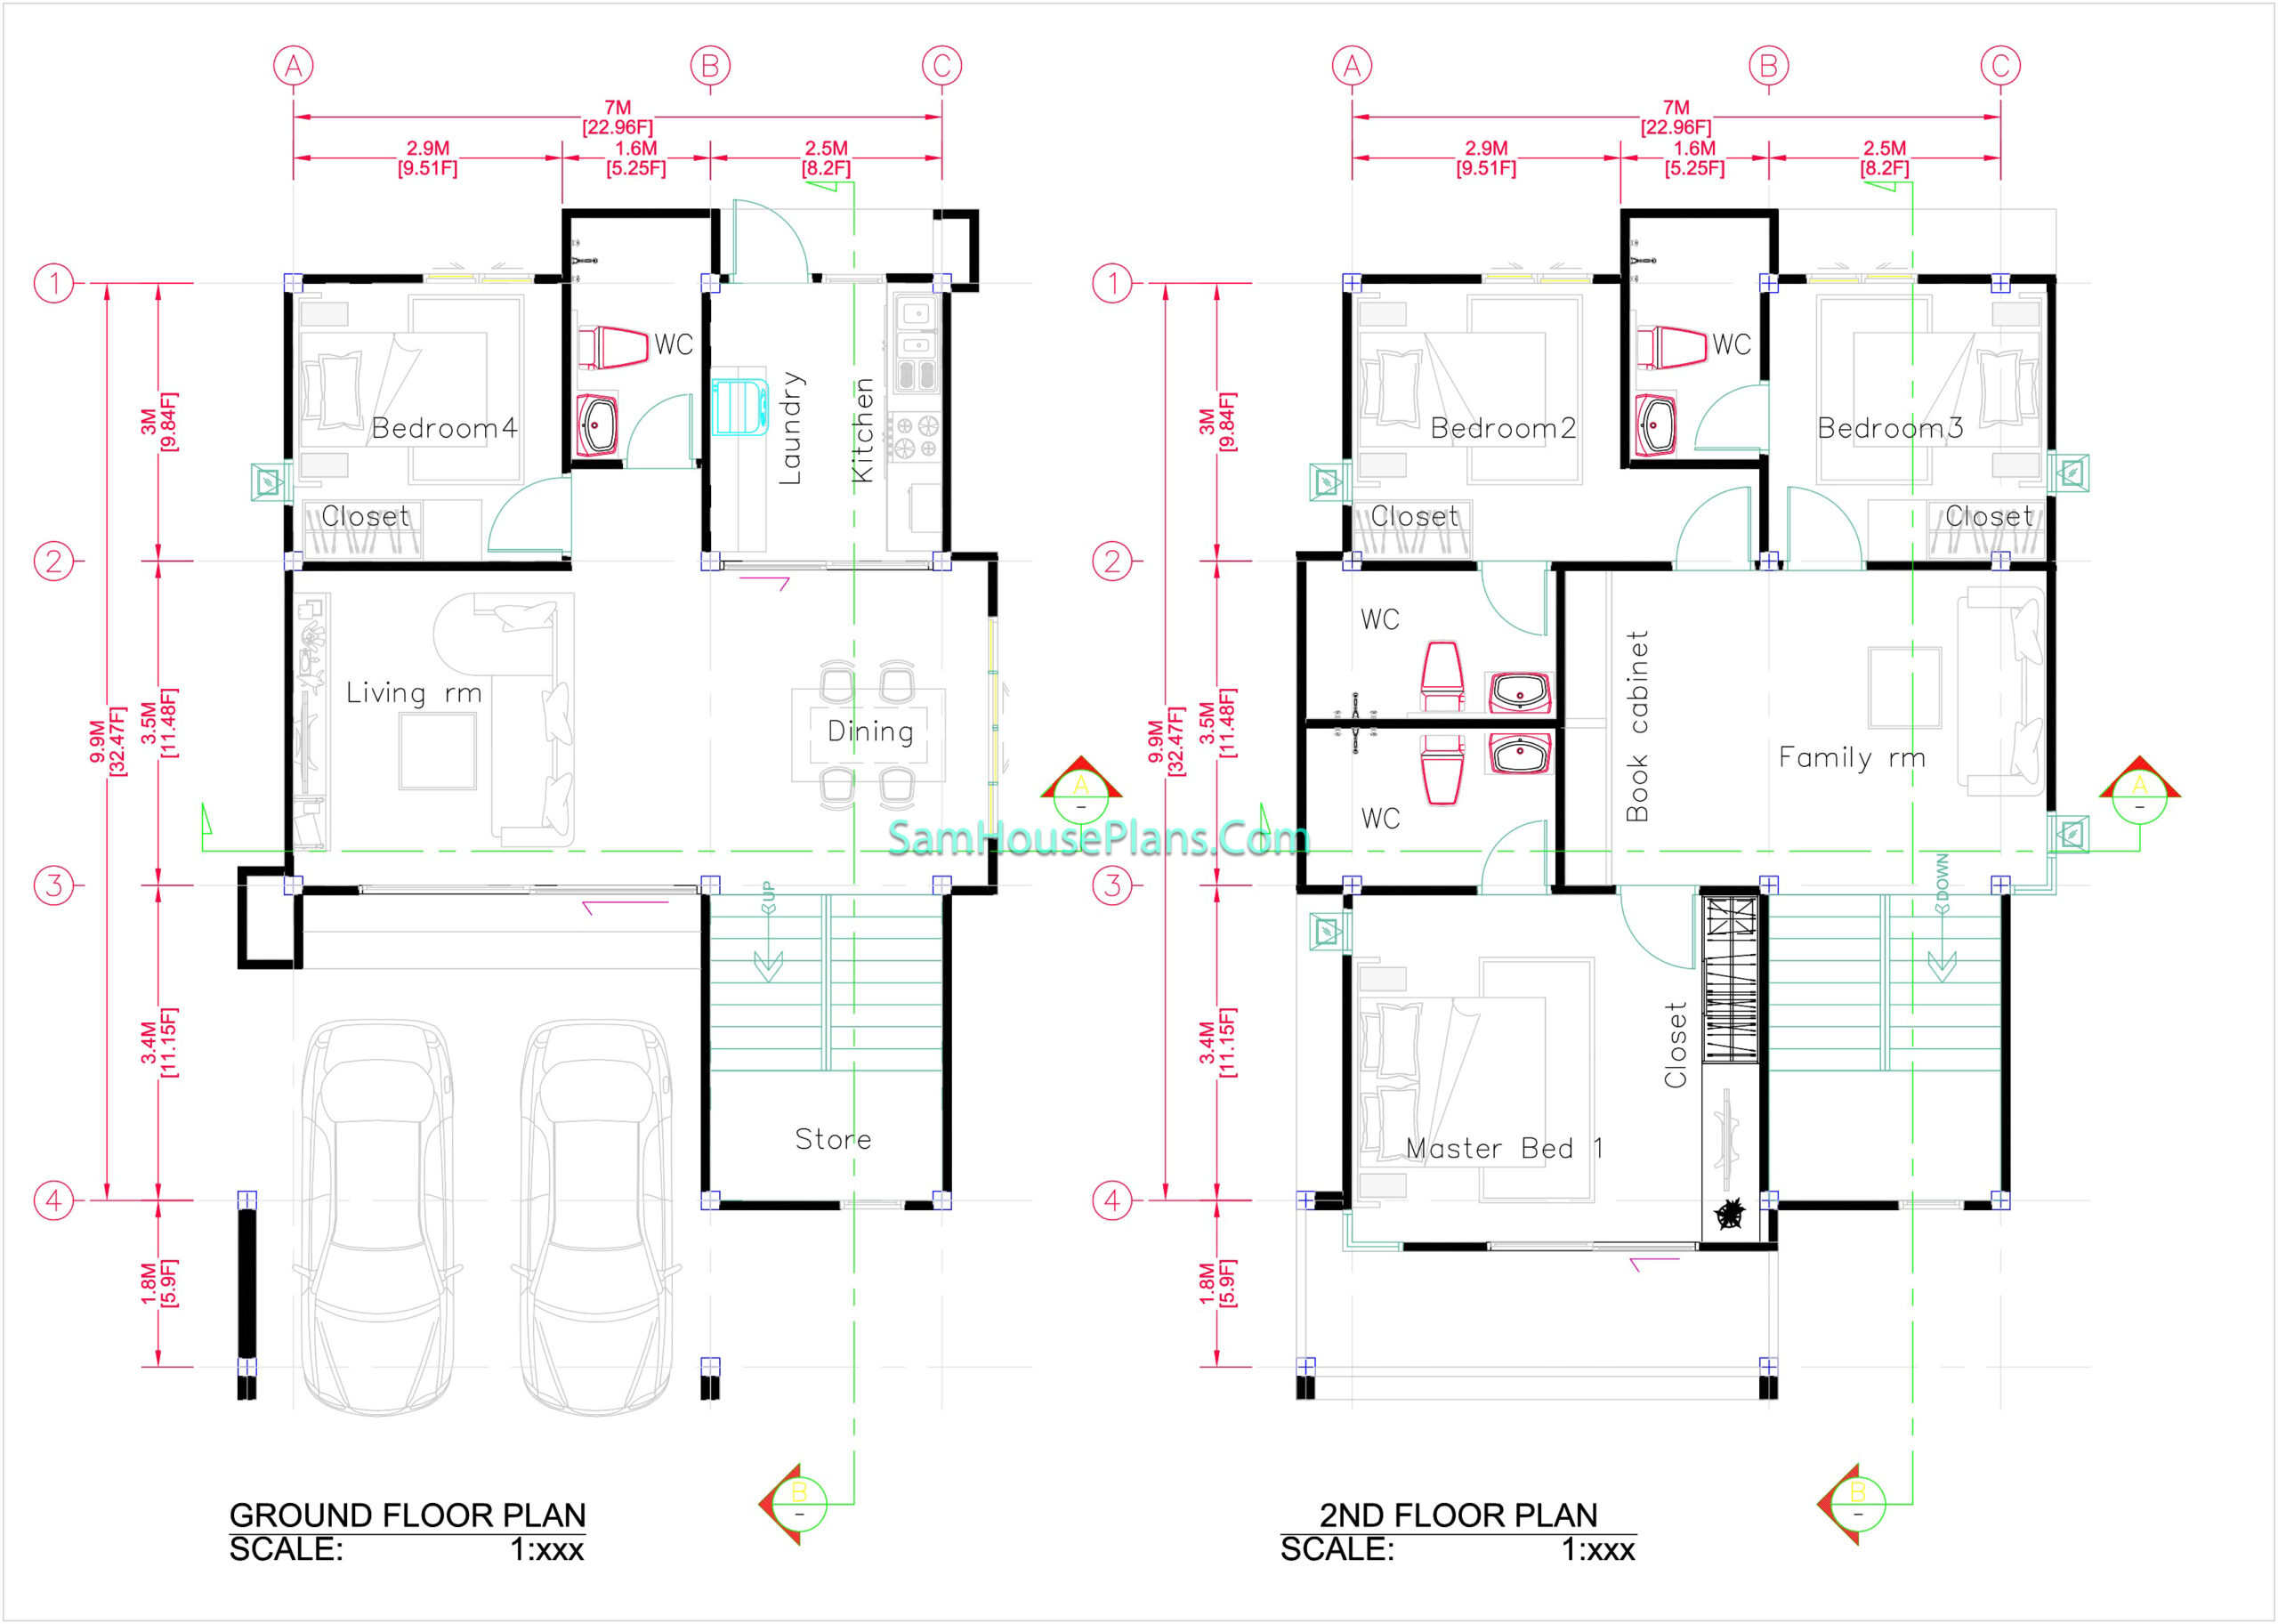 House Design Plans 7x11.7 Shed Roof 4 Beds PDF Full Plans Layout floor plan